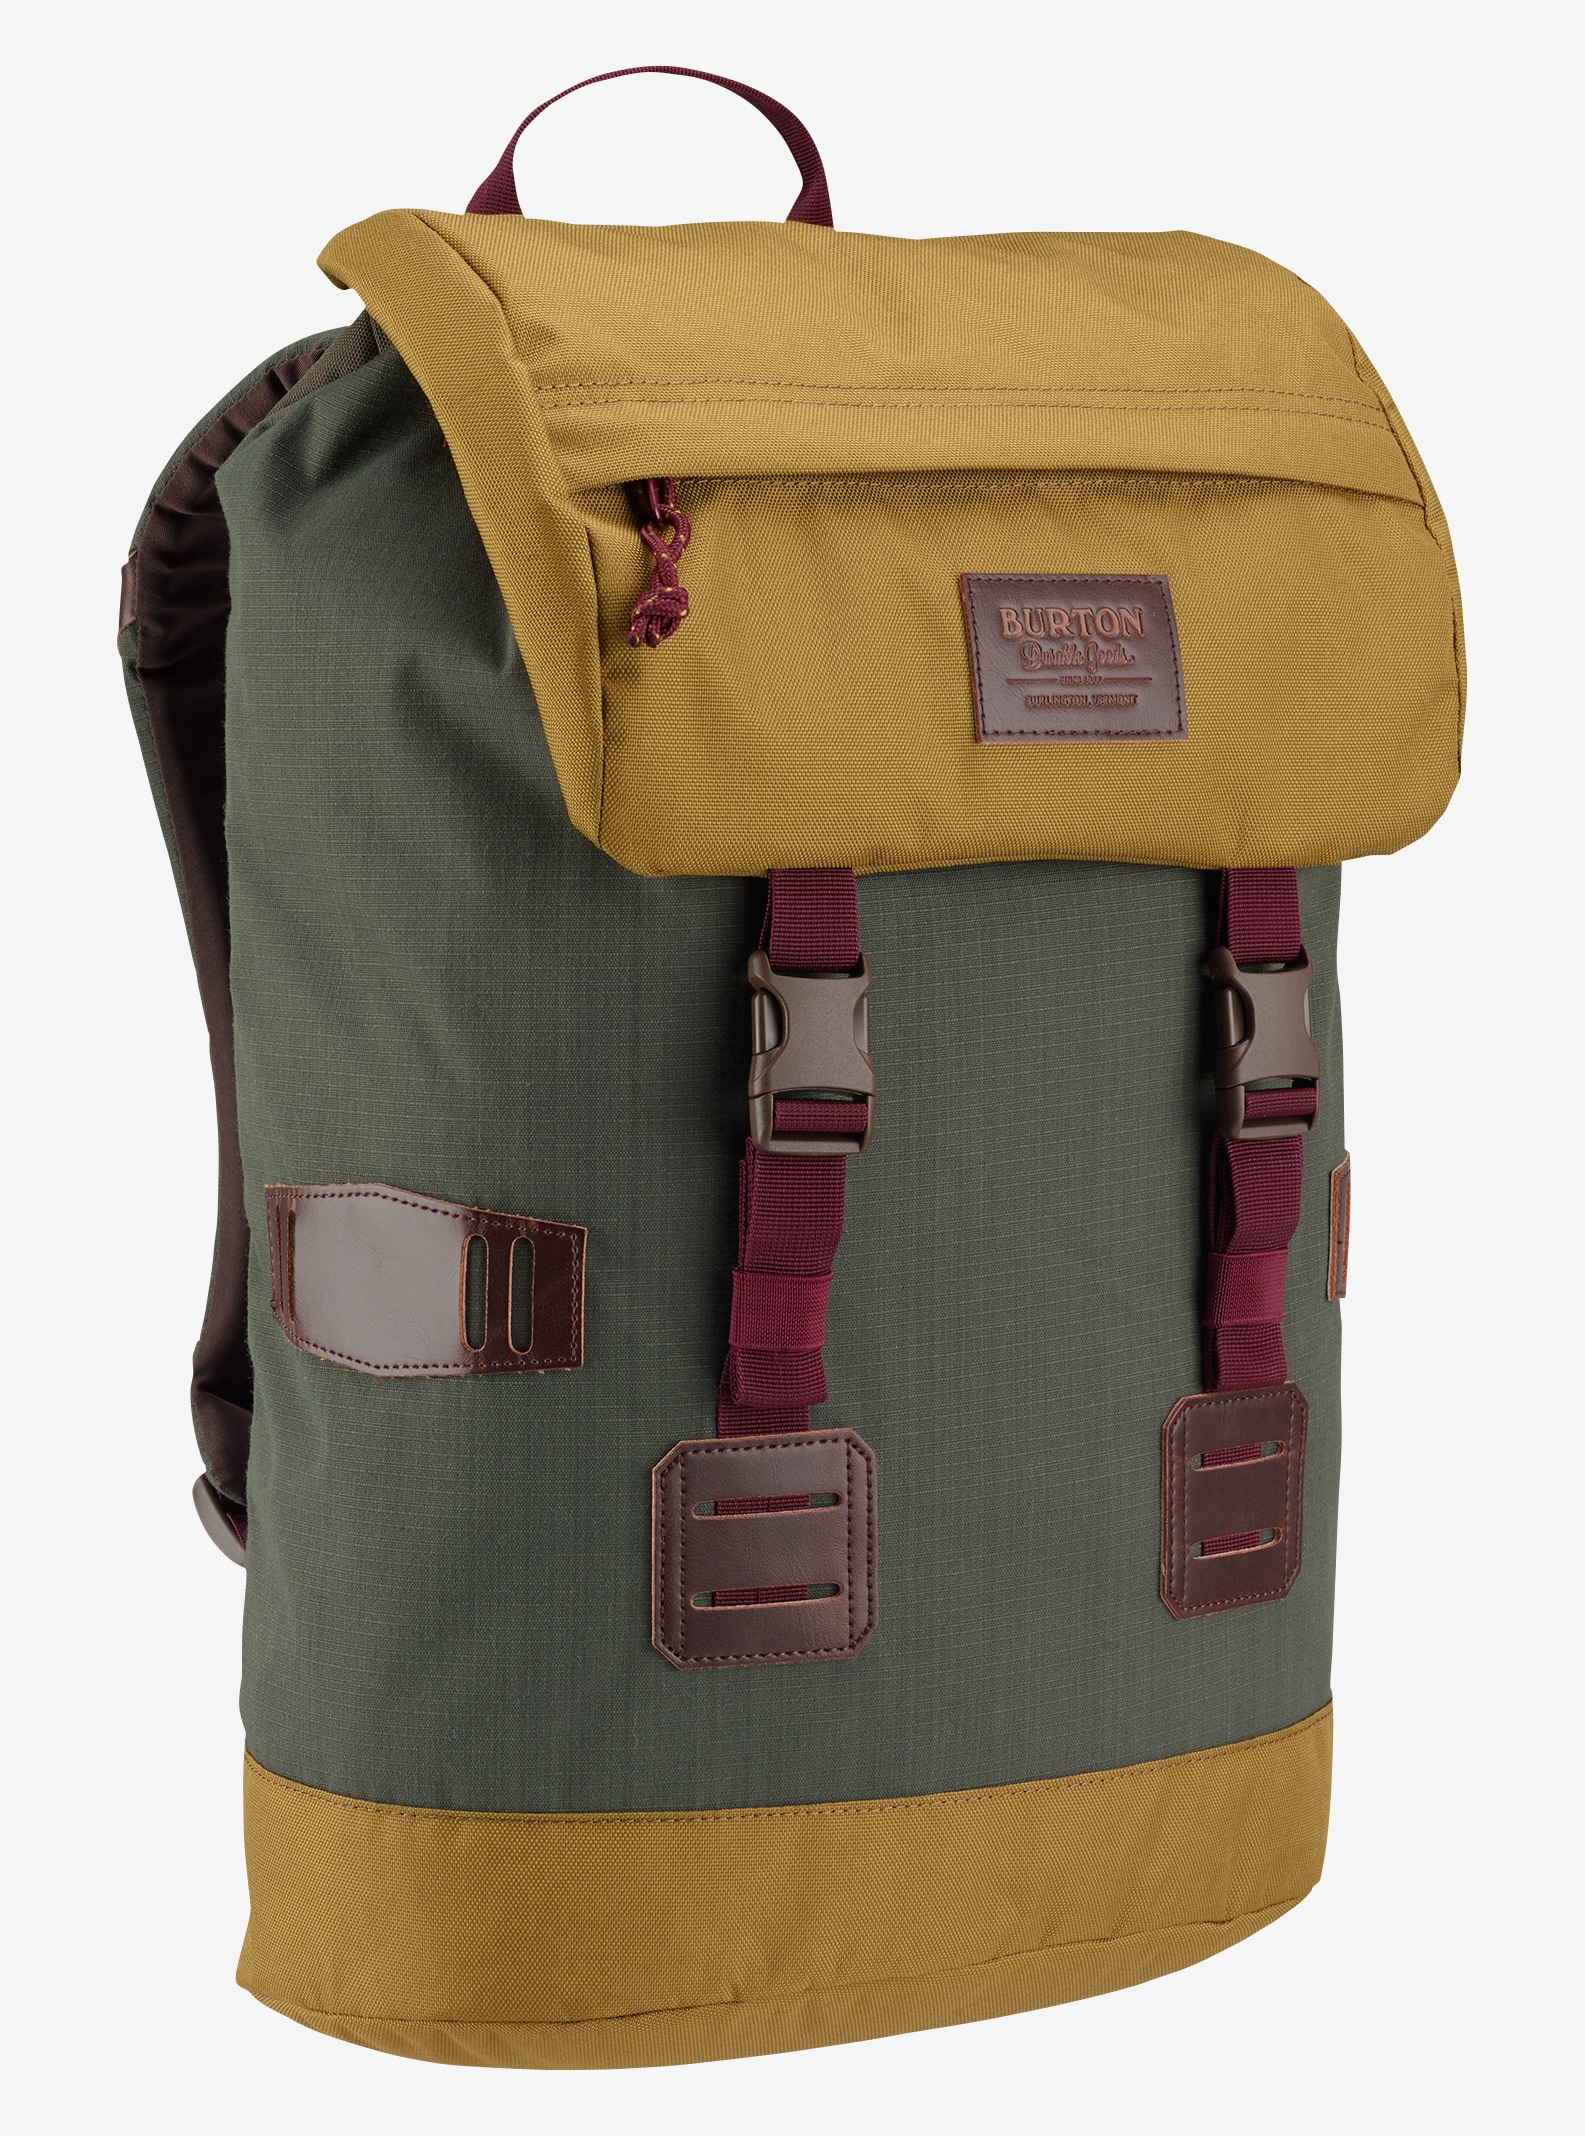 Burton Women's Tinder Backpack shown in Forest Night Ripstop